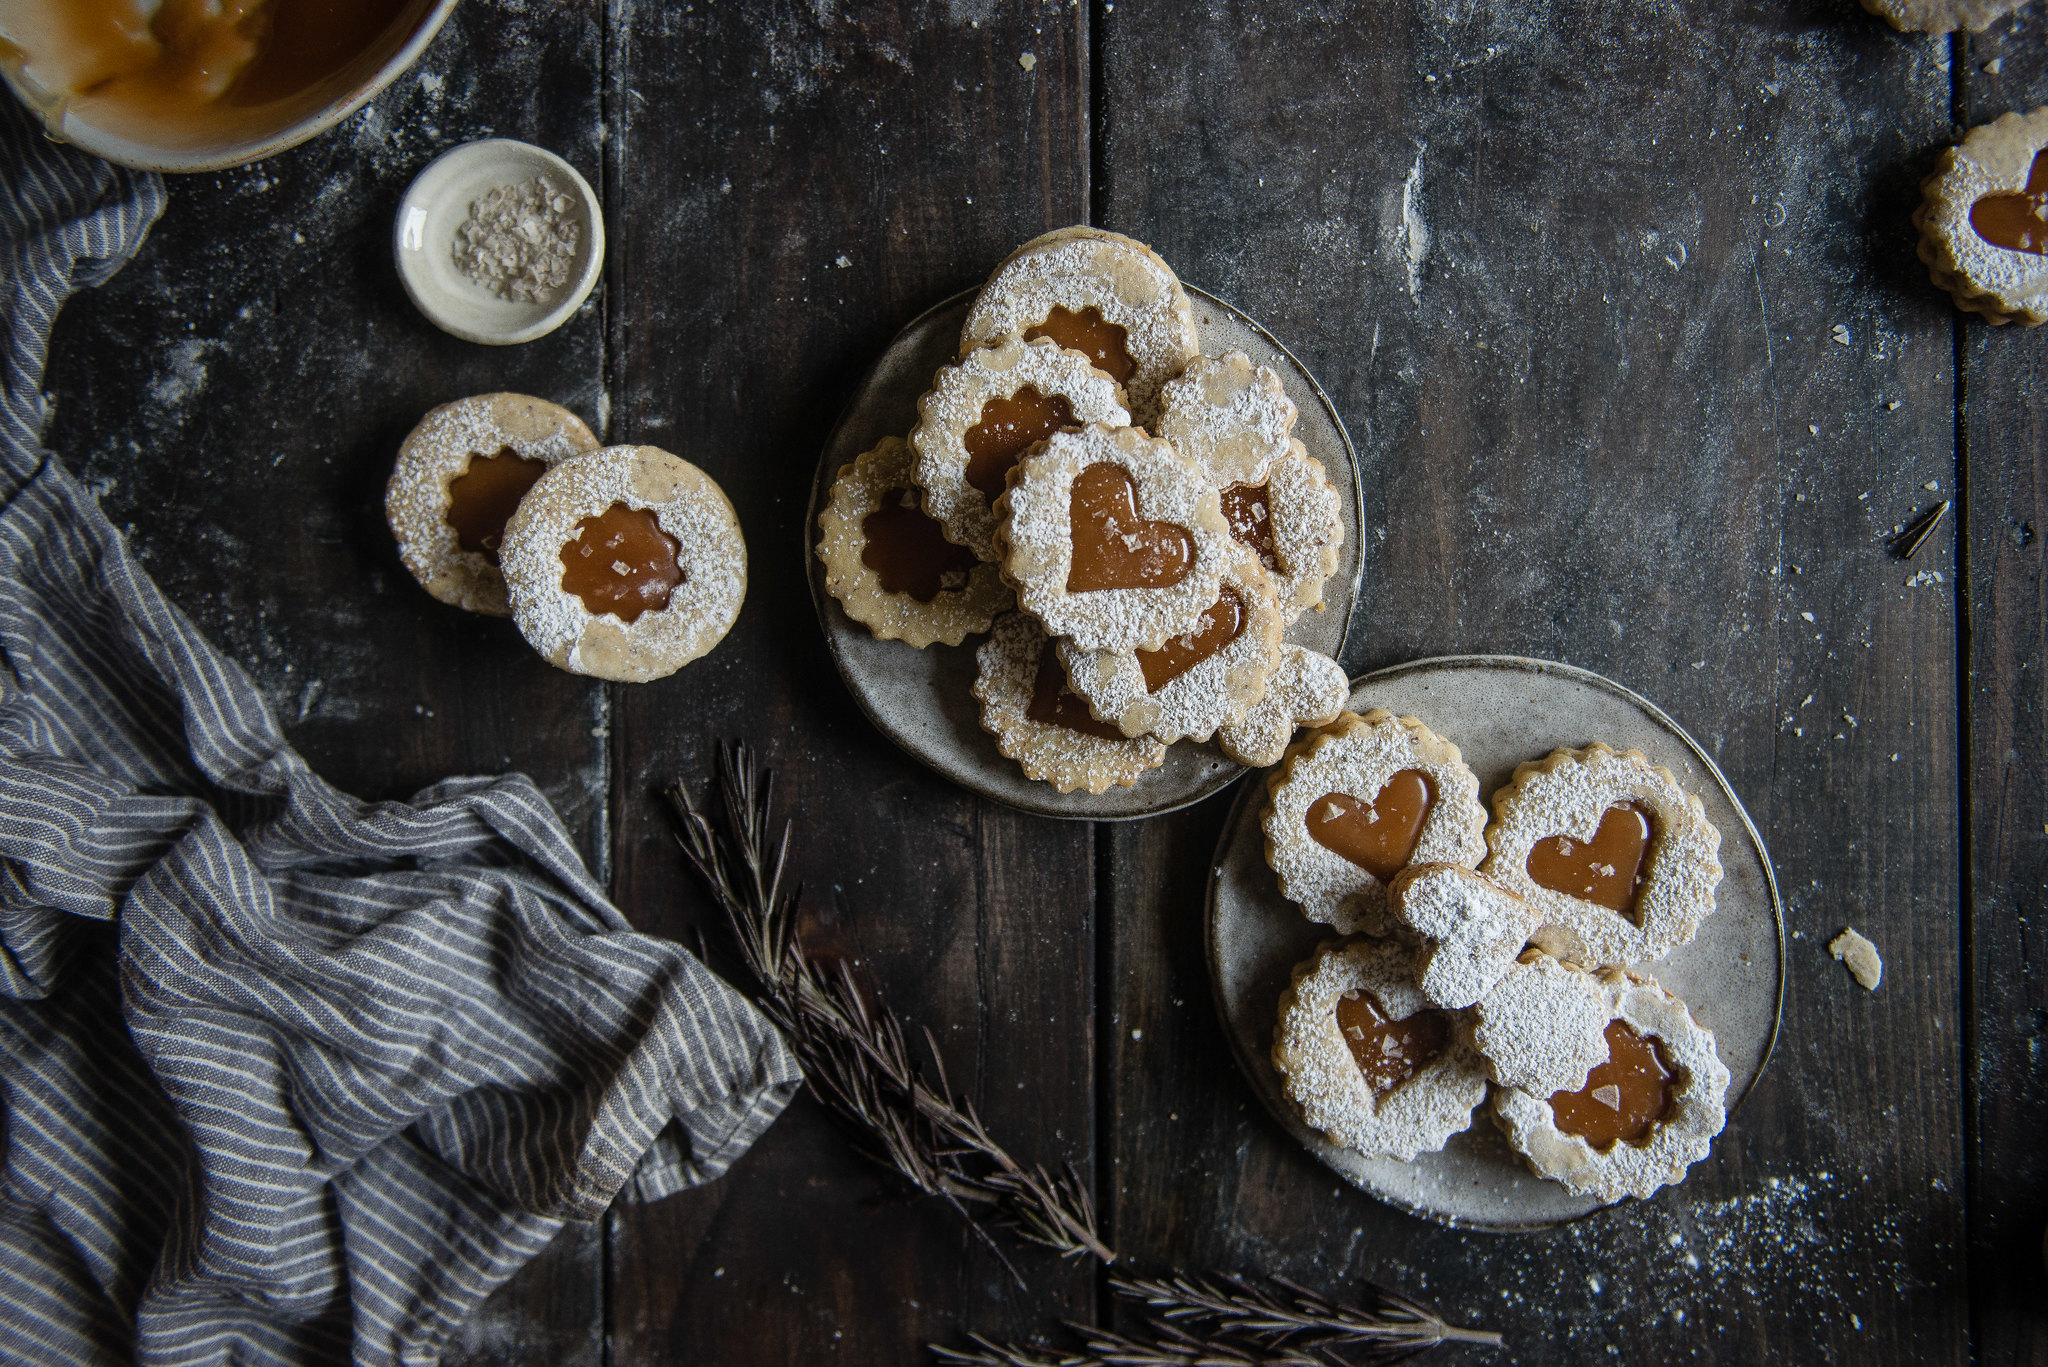 rosemary-hazelnut linzer cookies with salted caramel filling.